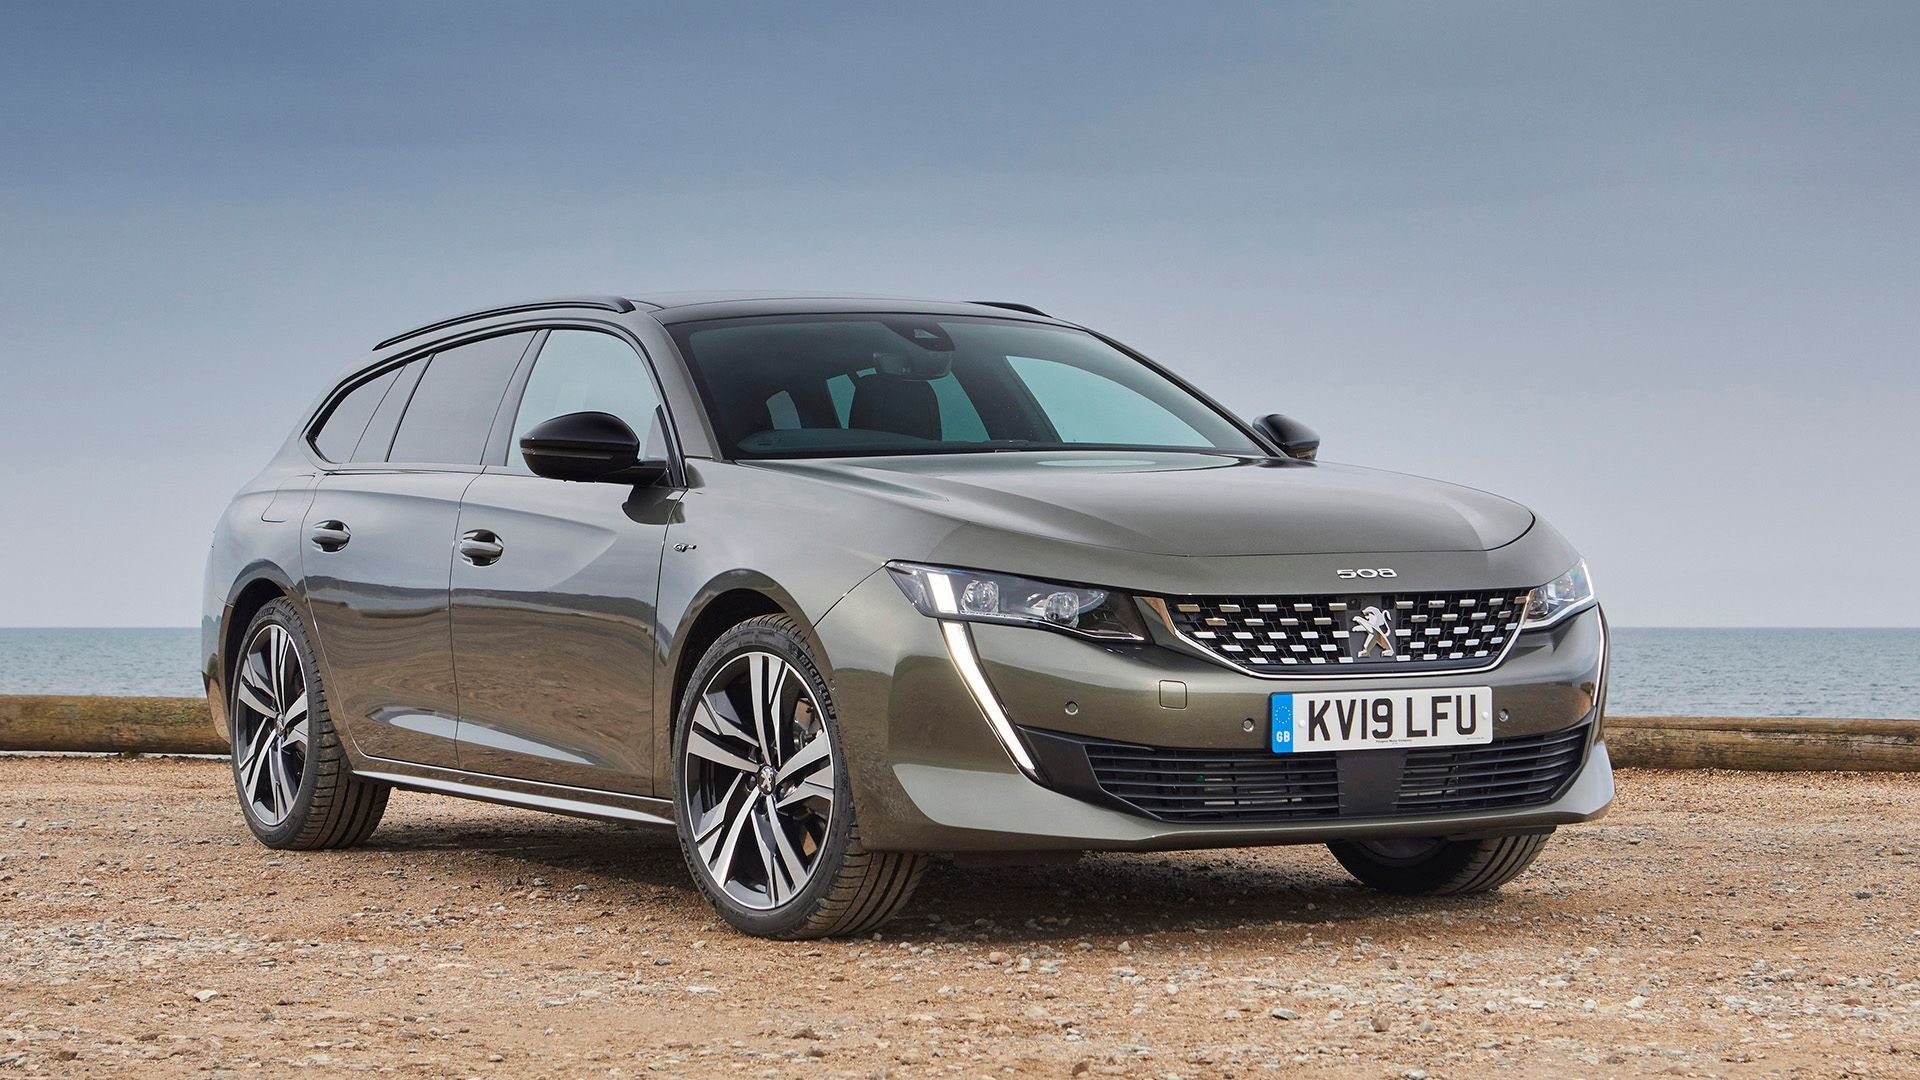 Peugeot 508 SW HDi image